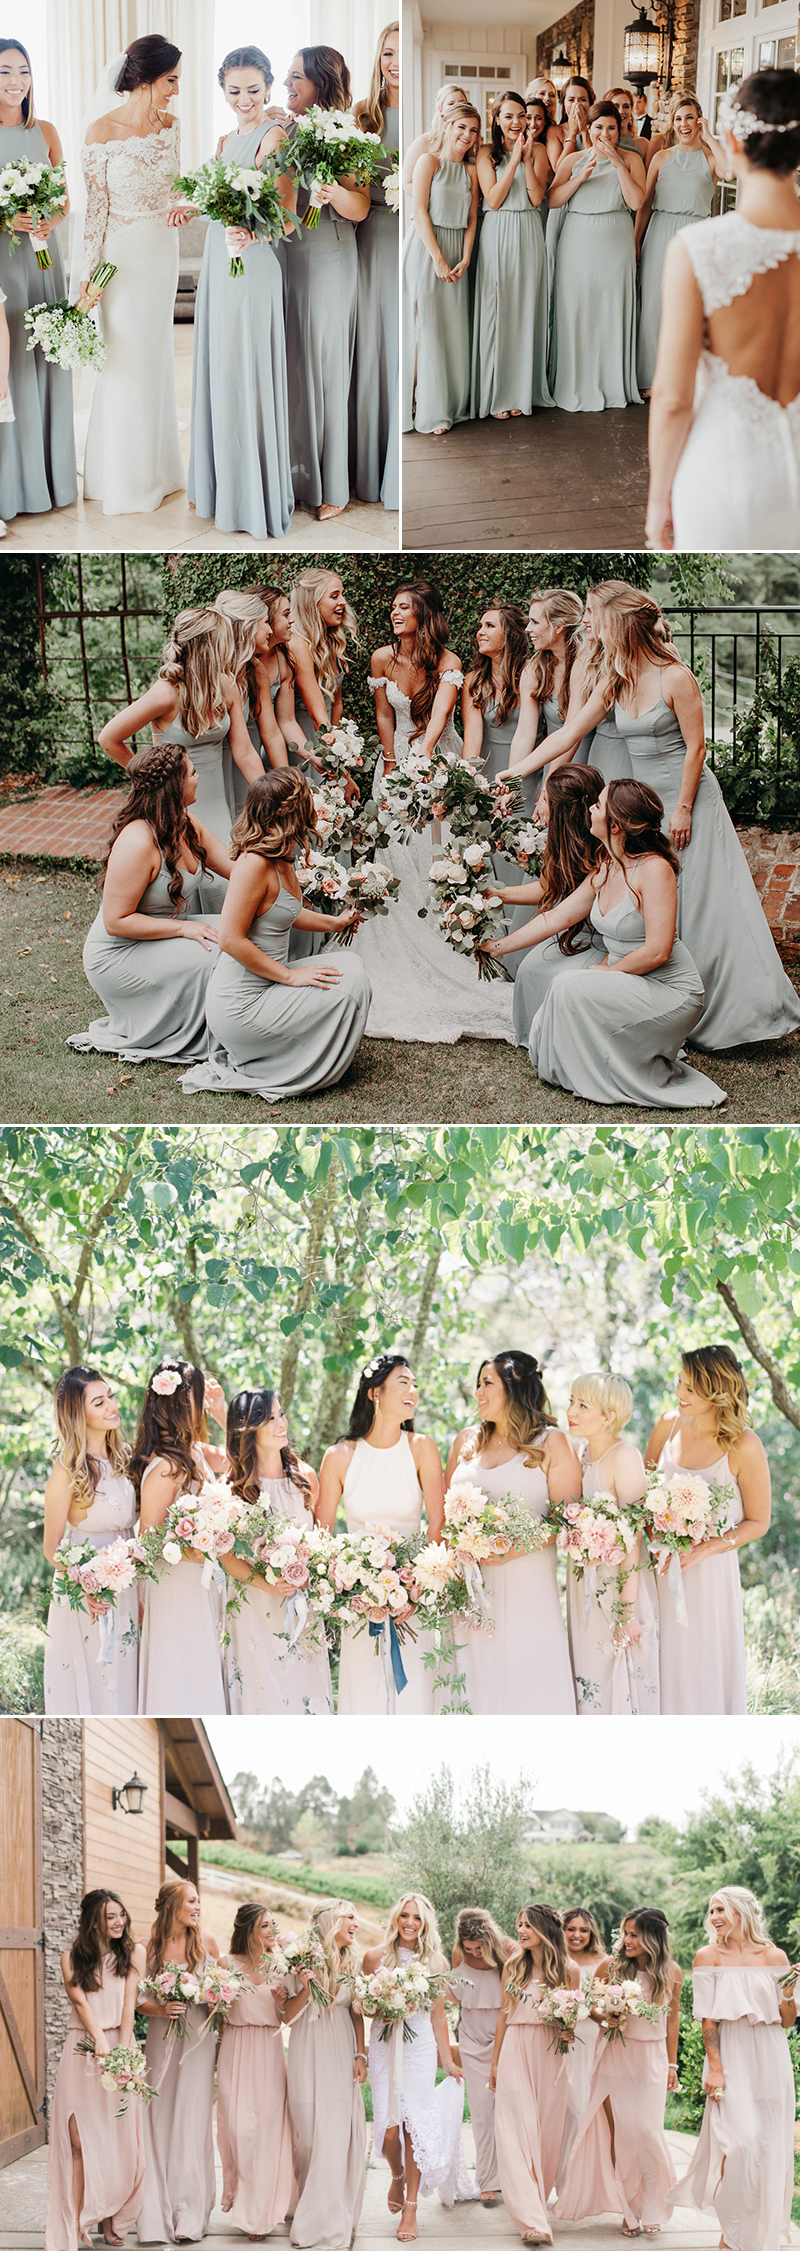 best bridesmaid dresses online